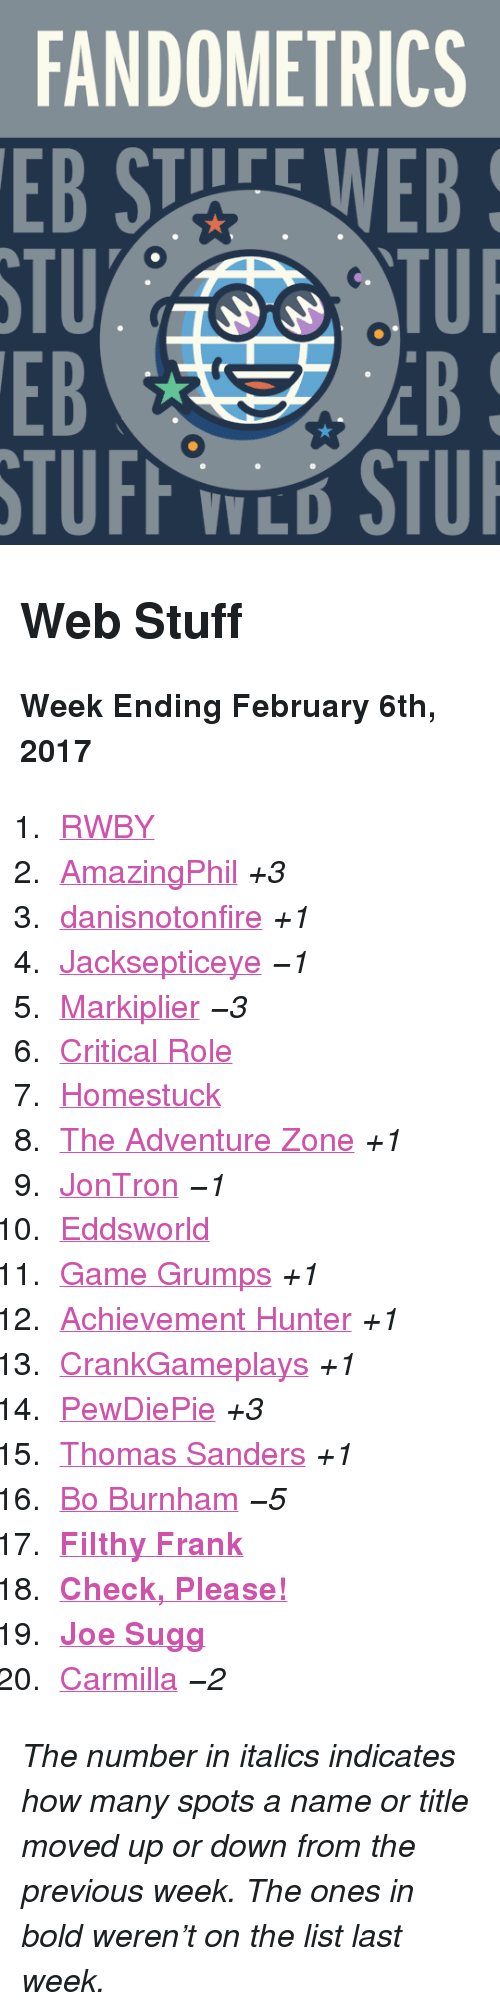 """jontron: FANDOMETRICS  EB STUFE WEB  STU  EB  TUI  EB  V L <h2>Web Stuff</h2><p><b>Week Ending February 6th, 2017</b></p><ol><li><a href=""""http://www.tumblr.com/search/rwby"""">RWBY</a></li>  <li><a href=""""http://www.tumblr.com/search/amazingphil"""">AmazingPhil</a><i>+3</i></li>  <li><a href=""""http://www.tumblr.com/search/danisnotonfire"""">danisnotonfire</a><i>+1</i></li>  <li><a href=""""http://www.tumblr.com/search/jacksepticeye"""">Jacksepticeye</a><i><i><i><i>−1</i></i></i></i></li>  <li><a href=""""http://www.tumblr.com/search/markiplier"""">Markiplier</a><i><i><i><i>−3</i></i></i></i></li>  <li><a href=""""http://www.tumblr.com/search/critical%20role"""">Critical Role</a></li>  <li><a href=""""http://www.tumblr.com/search/homestuck"""">Homestuck</a></li>  <li><a href=""""http://www.tumblr.com/search/the%20adventure%20zone"""">The Adventure Zone</a><i>+1</i></li>  <li><a href=""""http://www.tumblr.com/search/jontron"""">JonTron</a><i><i><i><i>−1</i></i></i></i></li>  <li><a href=""""http://www.tumblr.com/search/eddsworld"""">Eddsworld</a></li>  <li><a href=""""http://www.tumblr.com/search/game%20grumps"""">Game Grumps</a><i>+1</i></li>  <li><a href=""""http://www.tumblr.com/search/achievement%20hunter"""">Achievement Hunter</a><i>+1</i></li>  <li><a href=""""http://www.tumblr.com/search/crankgameplays"""">CrankGameplays</a><i>+1</i></li>  <li><a href=""""http://www.tumblr.com/search/pewdiepie"""">PewDiePie</a><i>+3</i></li>  <li><a href=""""http://www.tumblr.com/search/thomas%20sanders"""">Thomas Sanders</a><i>+1</i></li>  <li><a href=""""http://www.tumblr.com/search/bo%20burnham"""">Bo Burnham</a><i><i><i><i>−5</i></i></i></i></li>  <li><a href=""""http://www.tumblr.com/search/filthy%20frank""""><b>Filthy Frank</b></a></li>  <li><a href=""""http://www.tumblr.com/search/omgcheckplease""""><b>Check, Please!</b></a></li>  <li><a href=""""http://www.tumblr.com/search/joe%20sugg""""><b>Joe Sugg</b></a></li>  <li><a href=""""http://www.tumblr.com/search/carmilla"""">Carmilla</a><i><i><i><i>−2</i></i></i></i></li></ol><p><i>The number in italics indicates how many spots a name"""